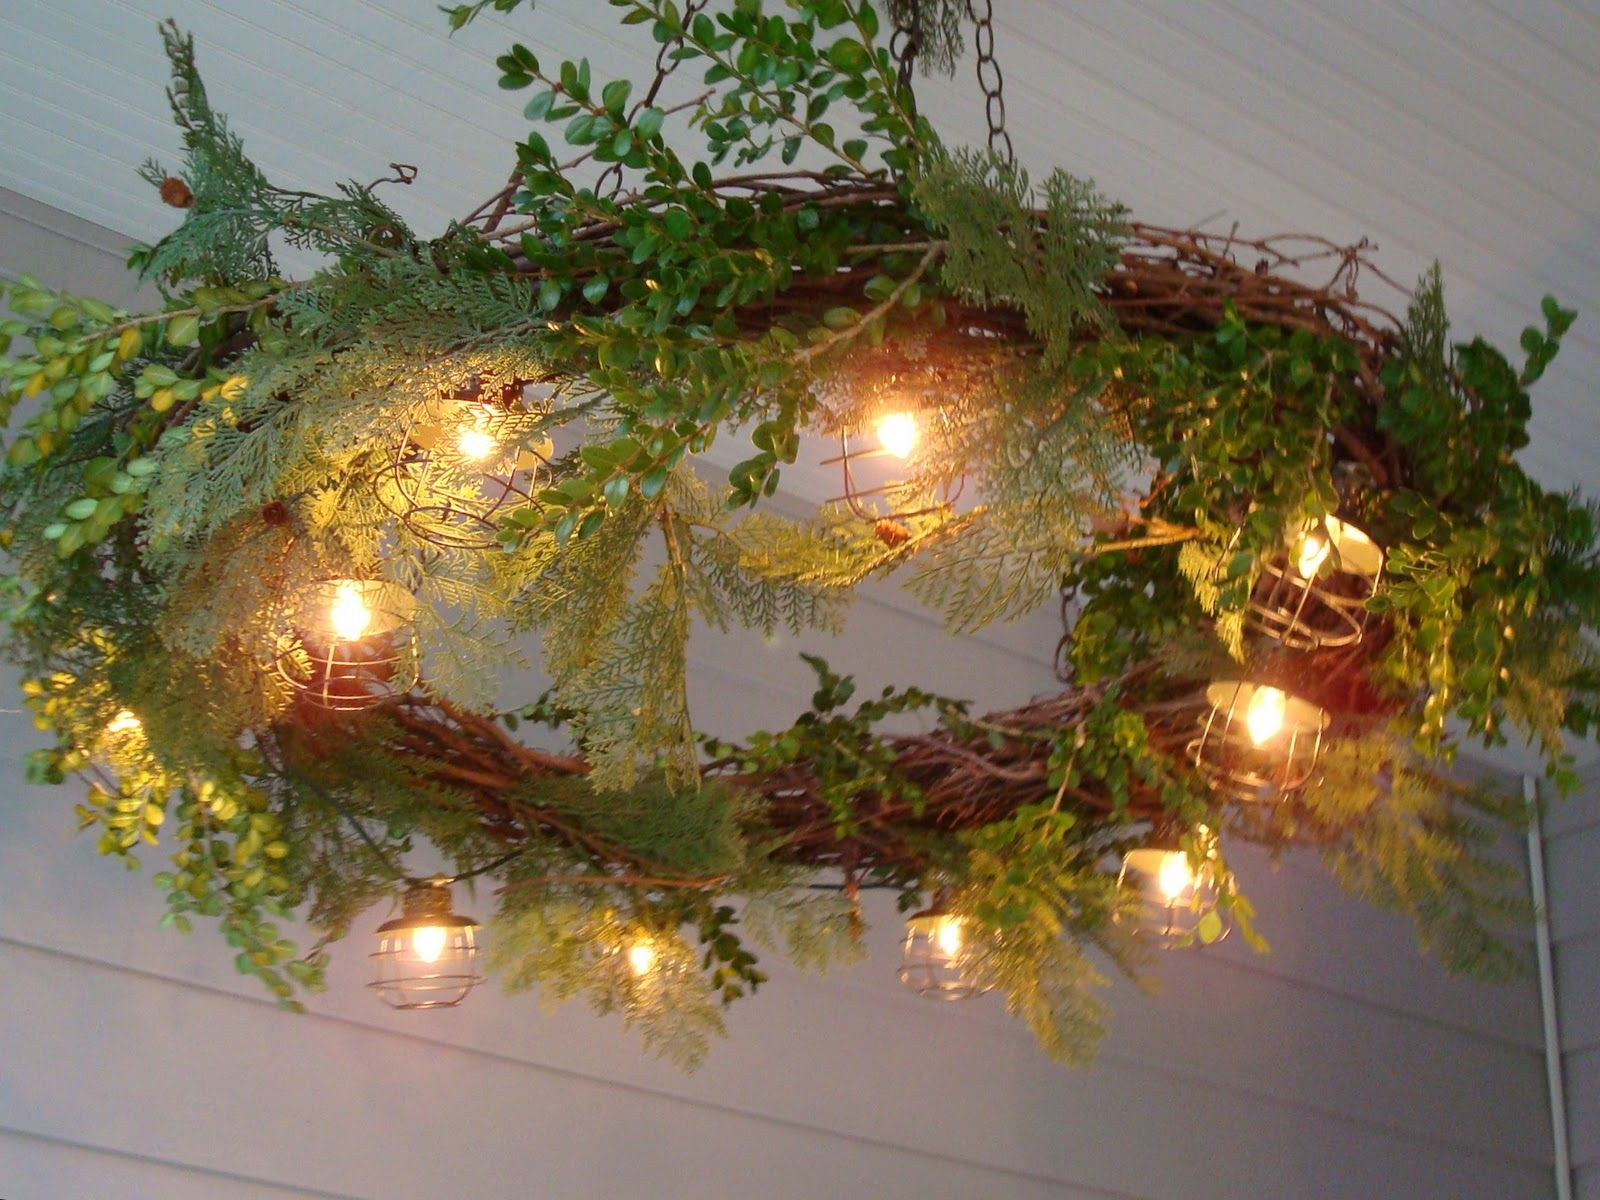 Grapevine garland decorating ideas rustchic grapevine wreath grapevine garland decorating ideas rustchic grapevine wreath chandelier arubaitofo Images